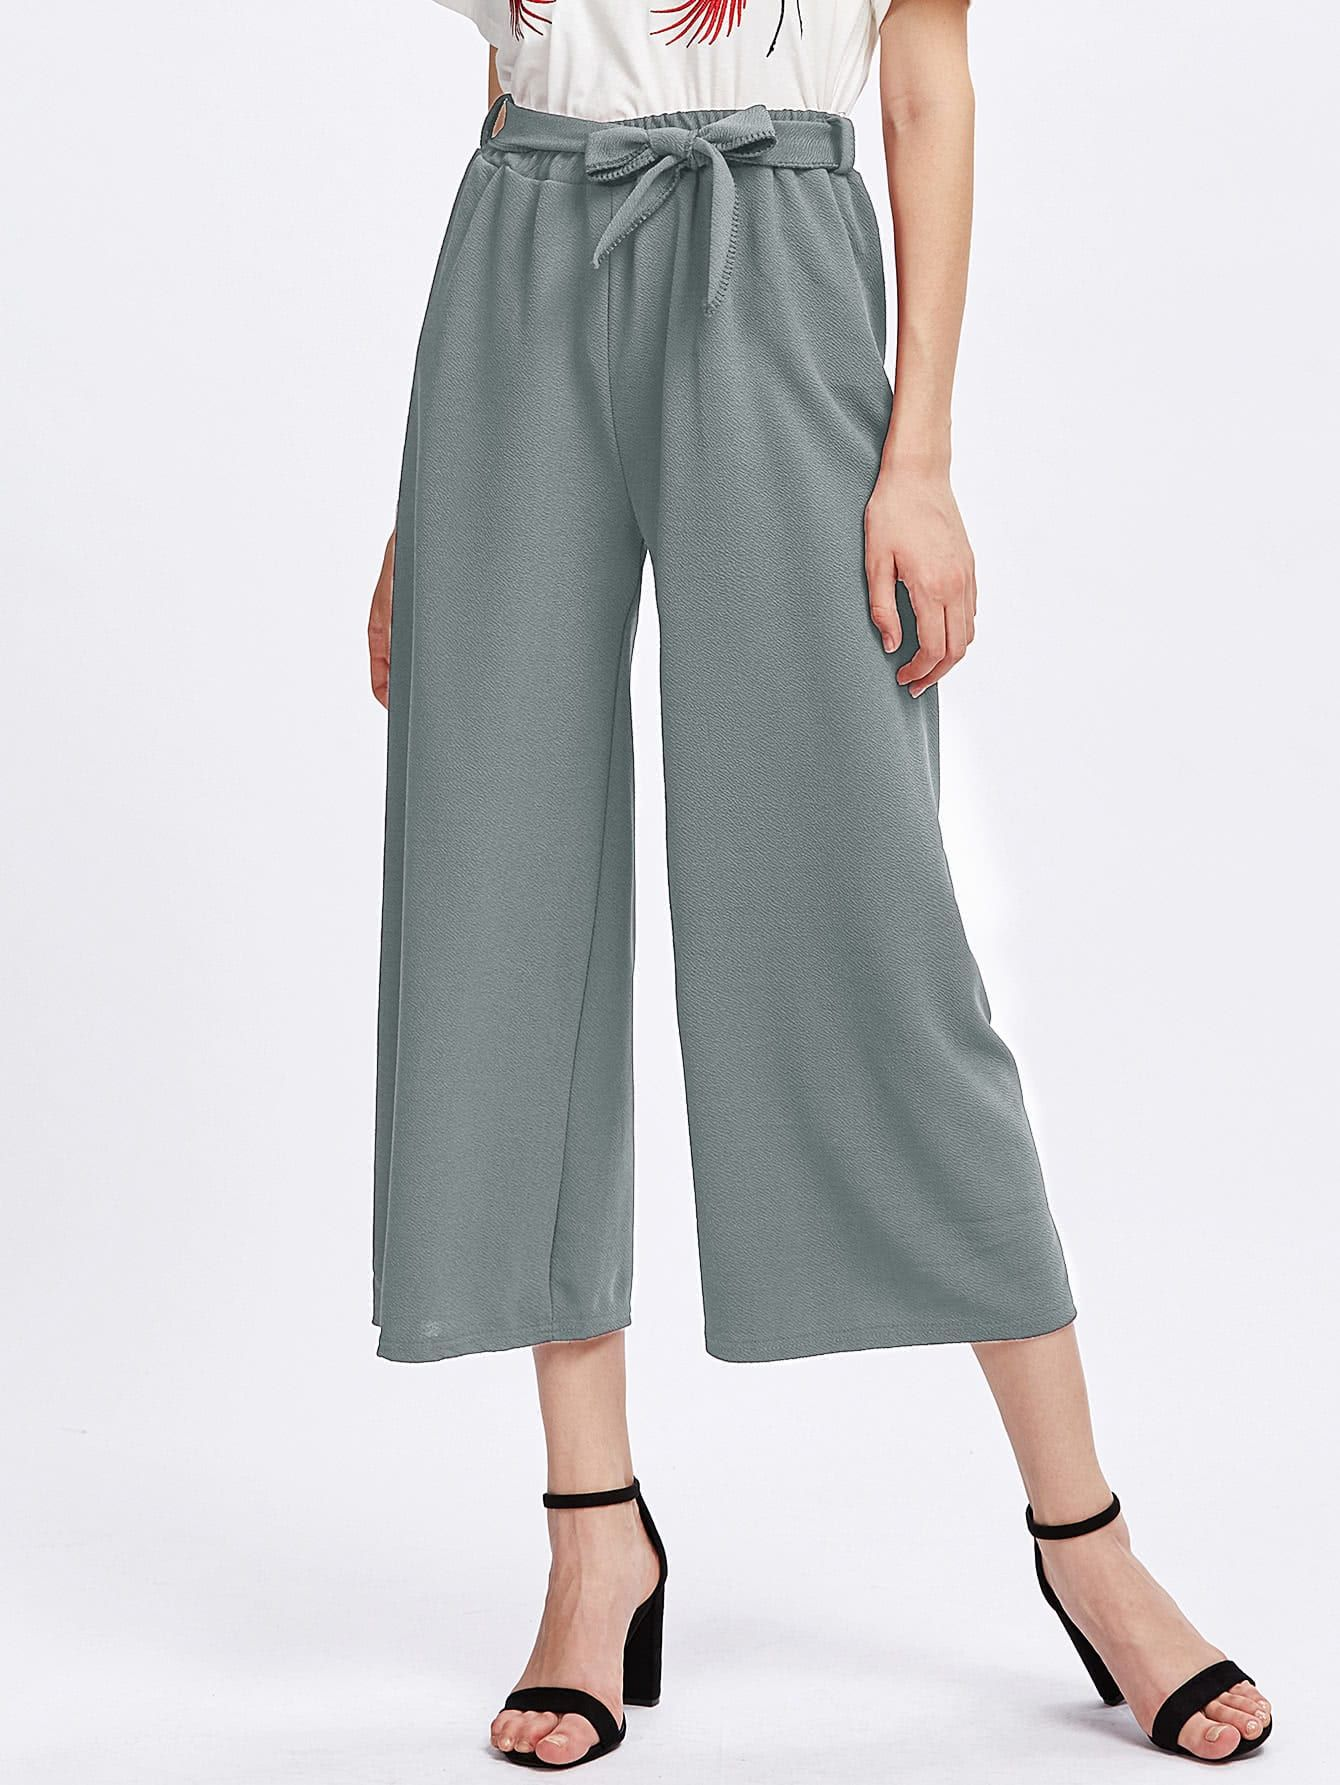 3a7fcec8b5 All Boho Plain Wide Leg Loose Elastic Waist Mid Waist Grey Crop Length Tie  Waist Culotte Pants with Belt